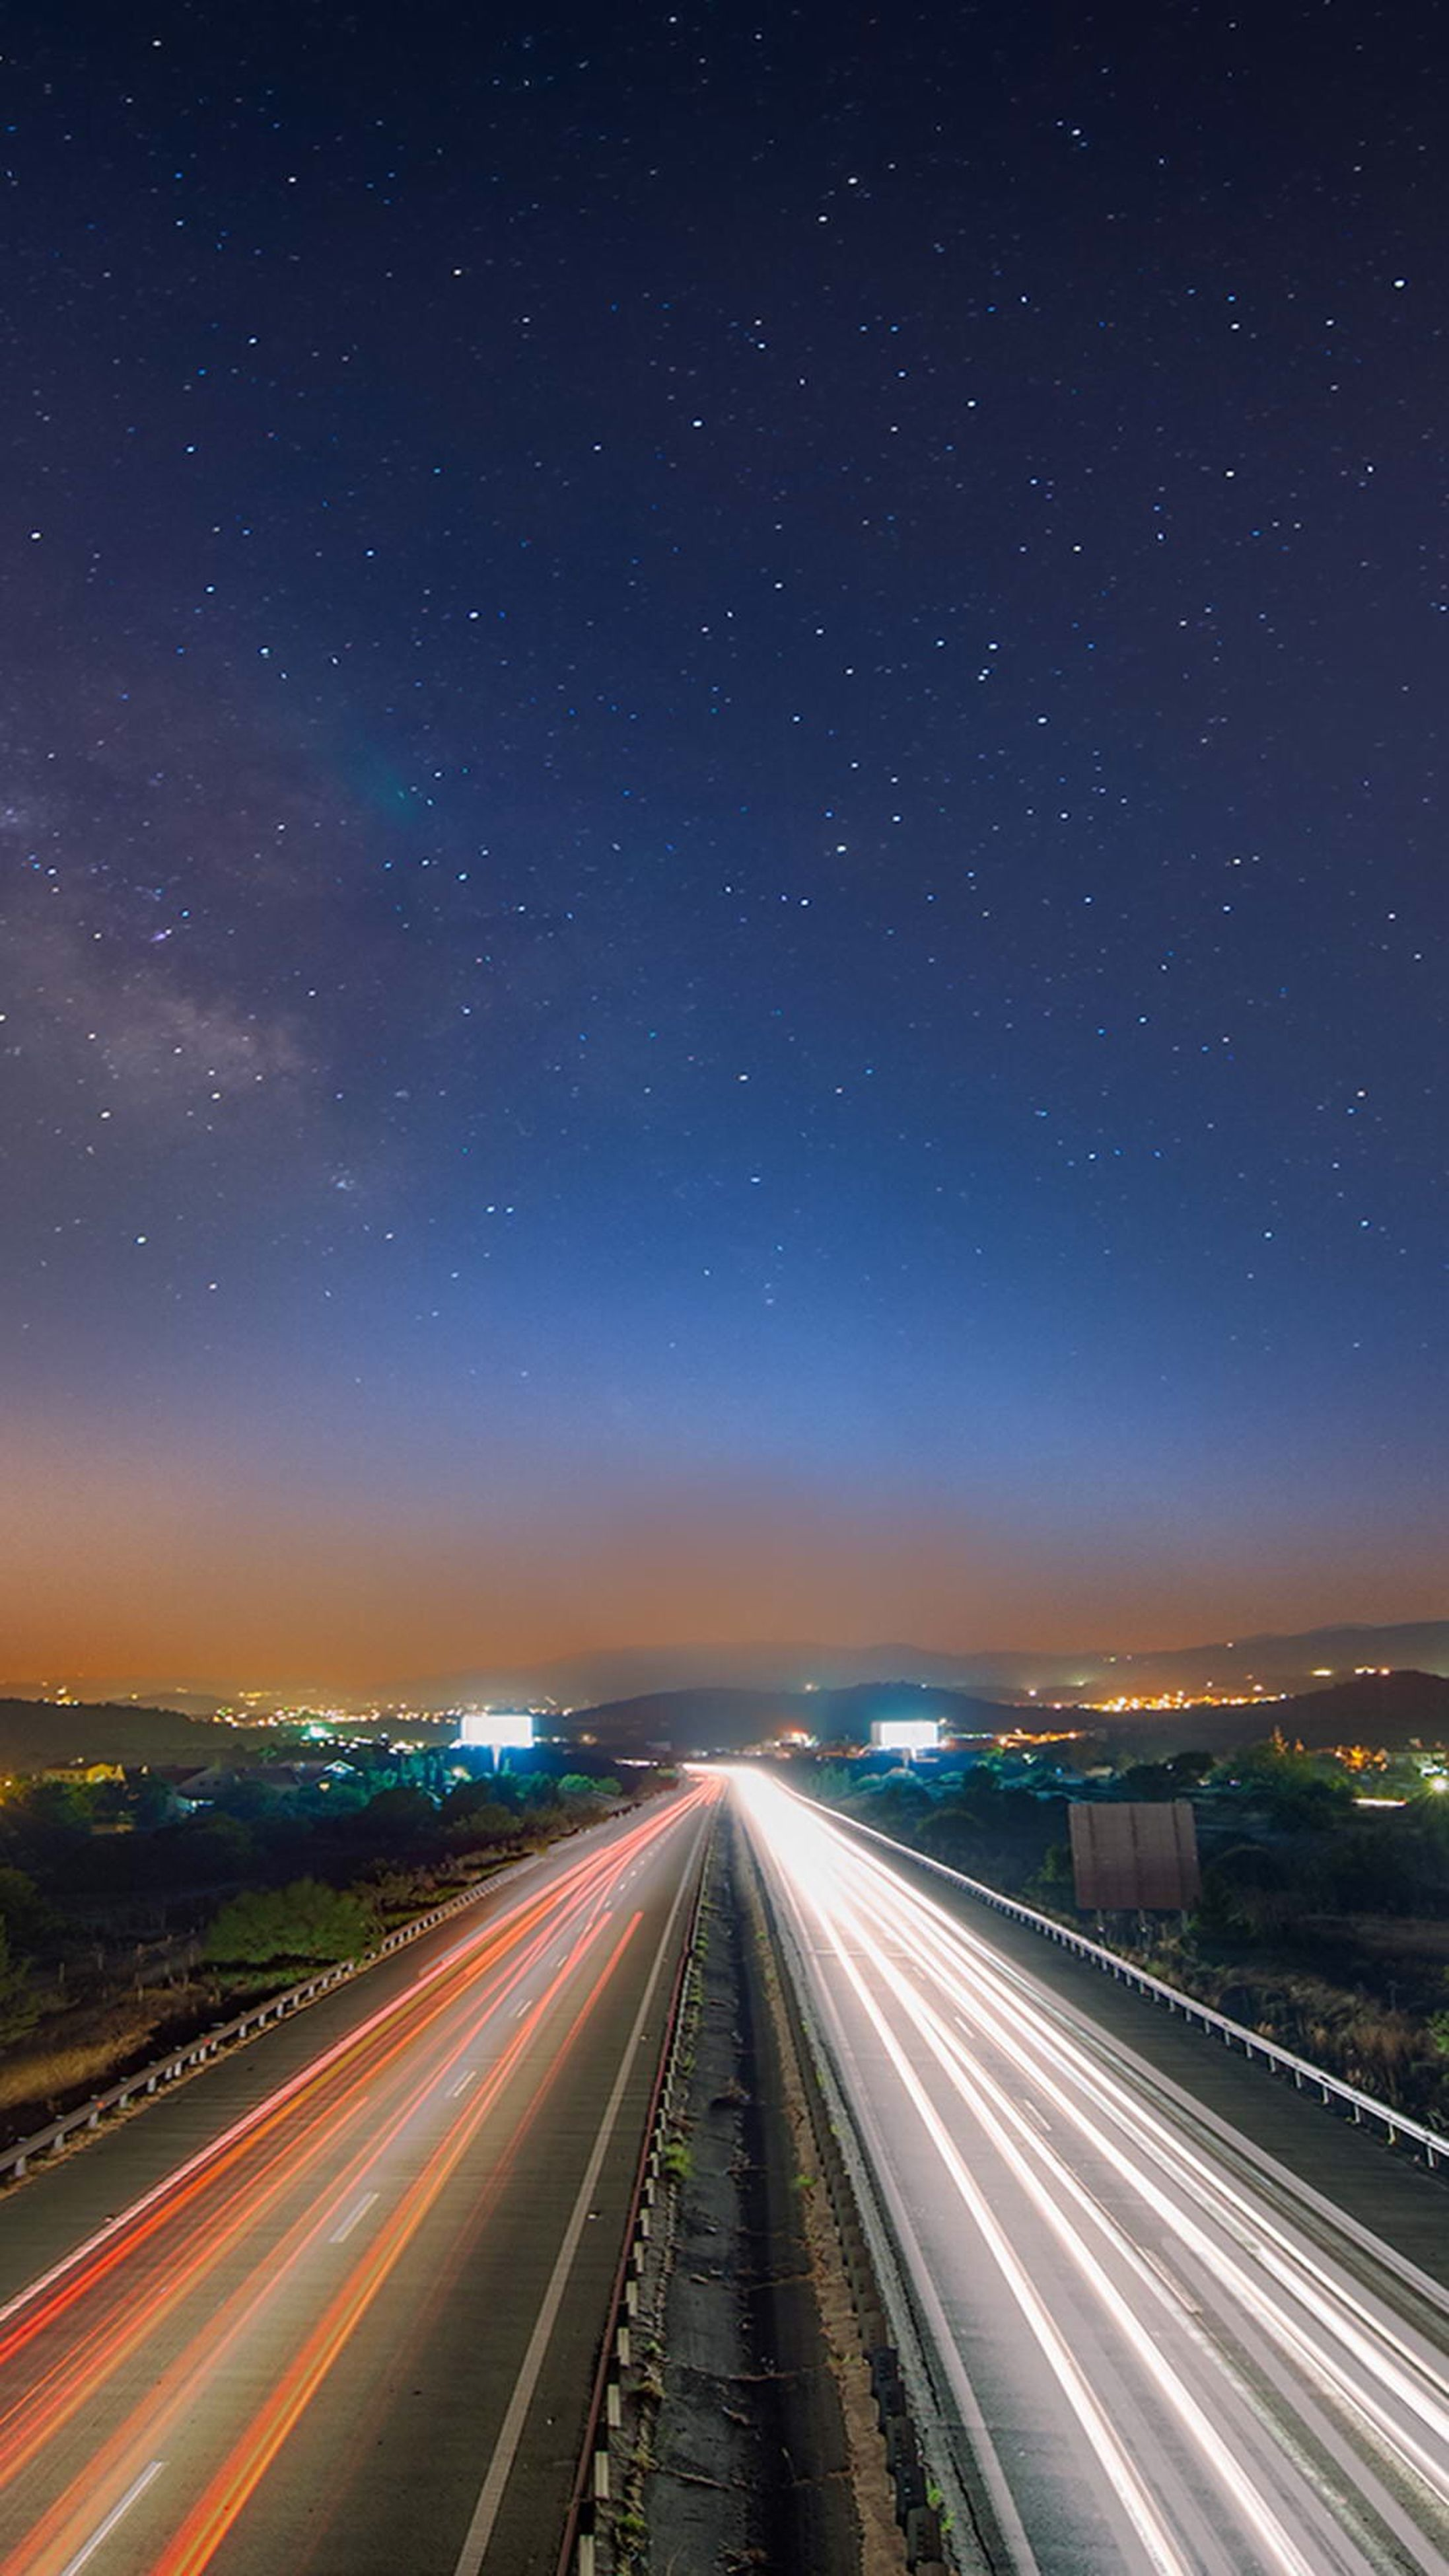 transportation, night, illuminated, road, the way forward, diminishing perspective, long exposure, highway, vanishing point, light trail, road marking, sky, infinity, motion, speed, landscape, scenics, no people, blurred motion, on the move